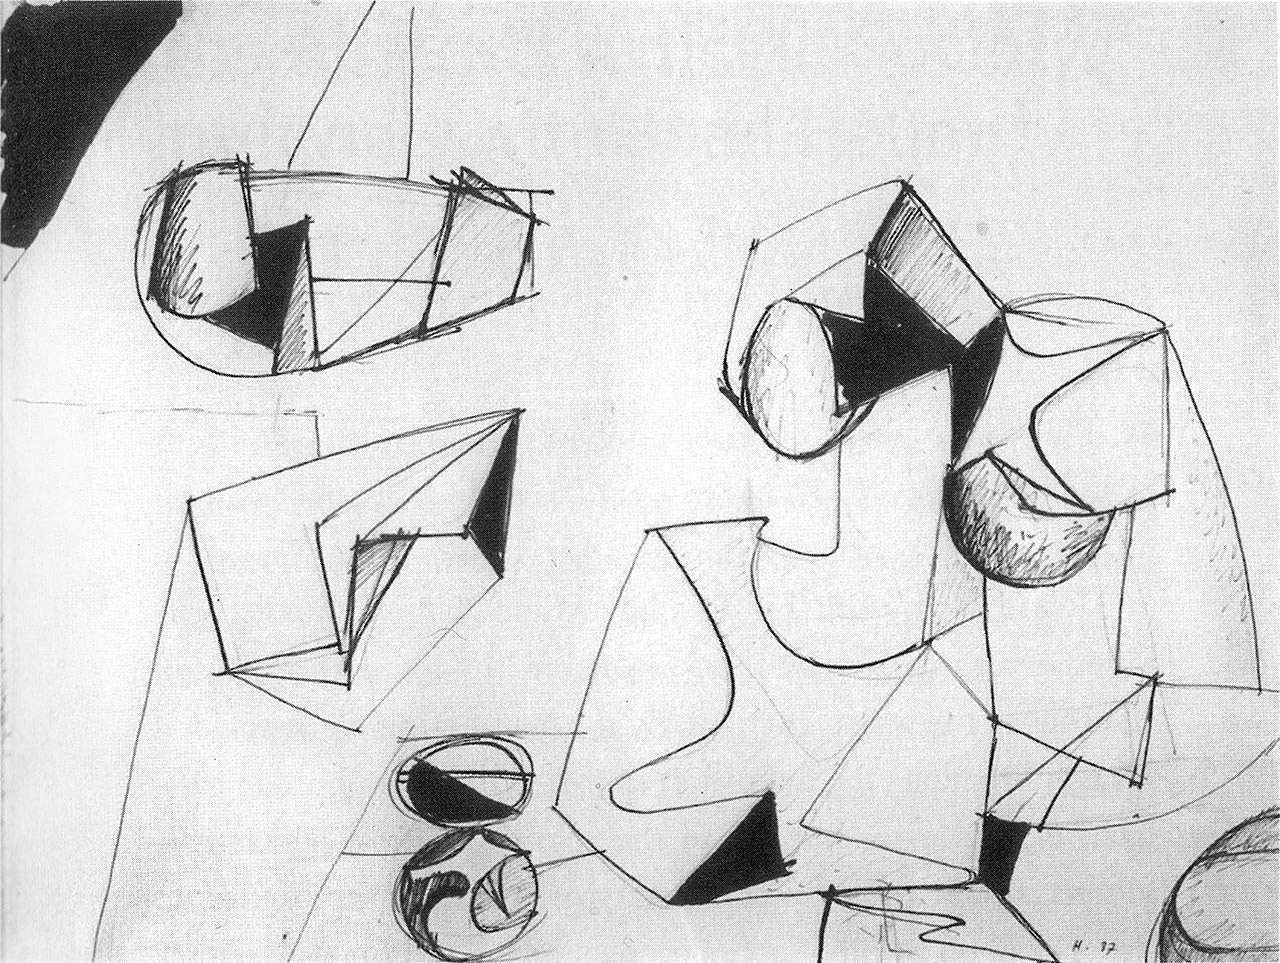 """Jean Hélion, """"Scattered Elements"""" (1937), ink on paper, 18 x 23 5/8 in (IMEC Archive), reproduced in black and white in 'Double Rhythm'"""